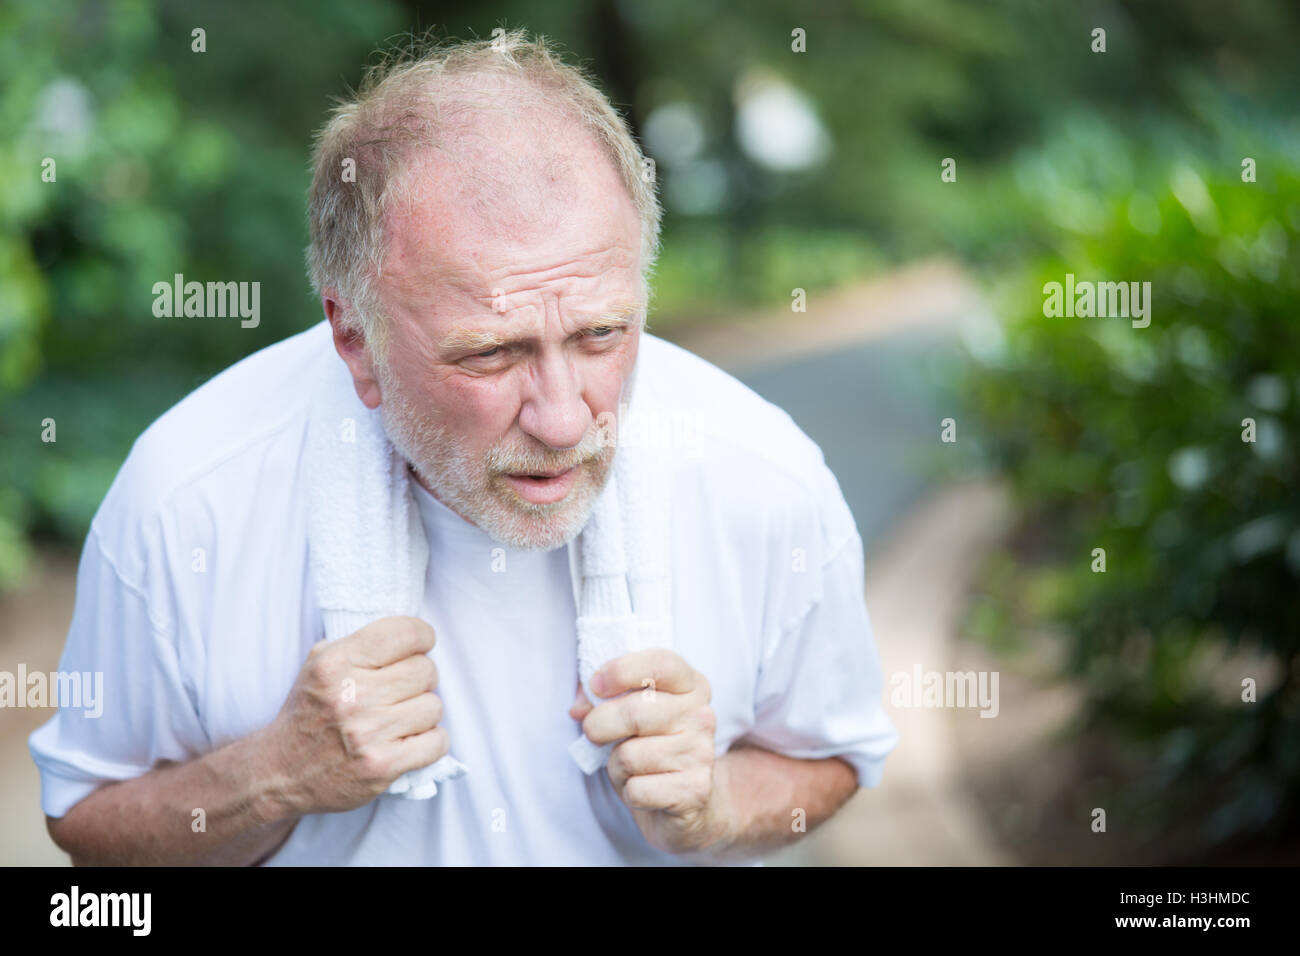 Closeup portrait, senior guy holding towel, very tired, exhausted from over exertion, sun stroke, isolated outdoors - Stock Image